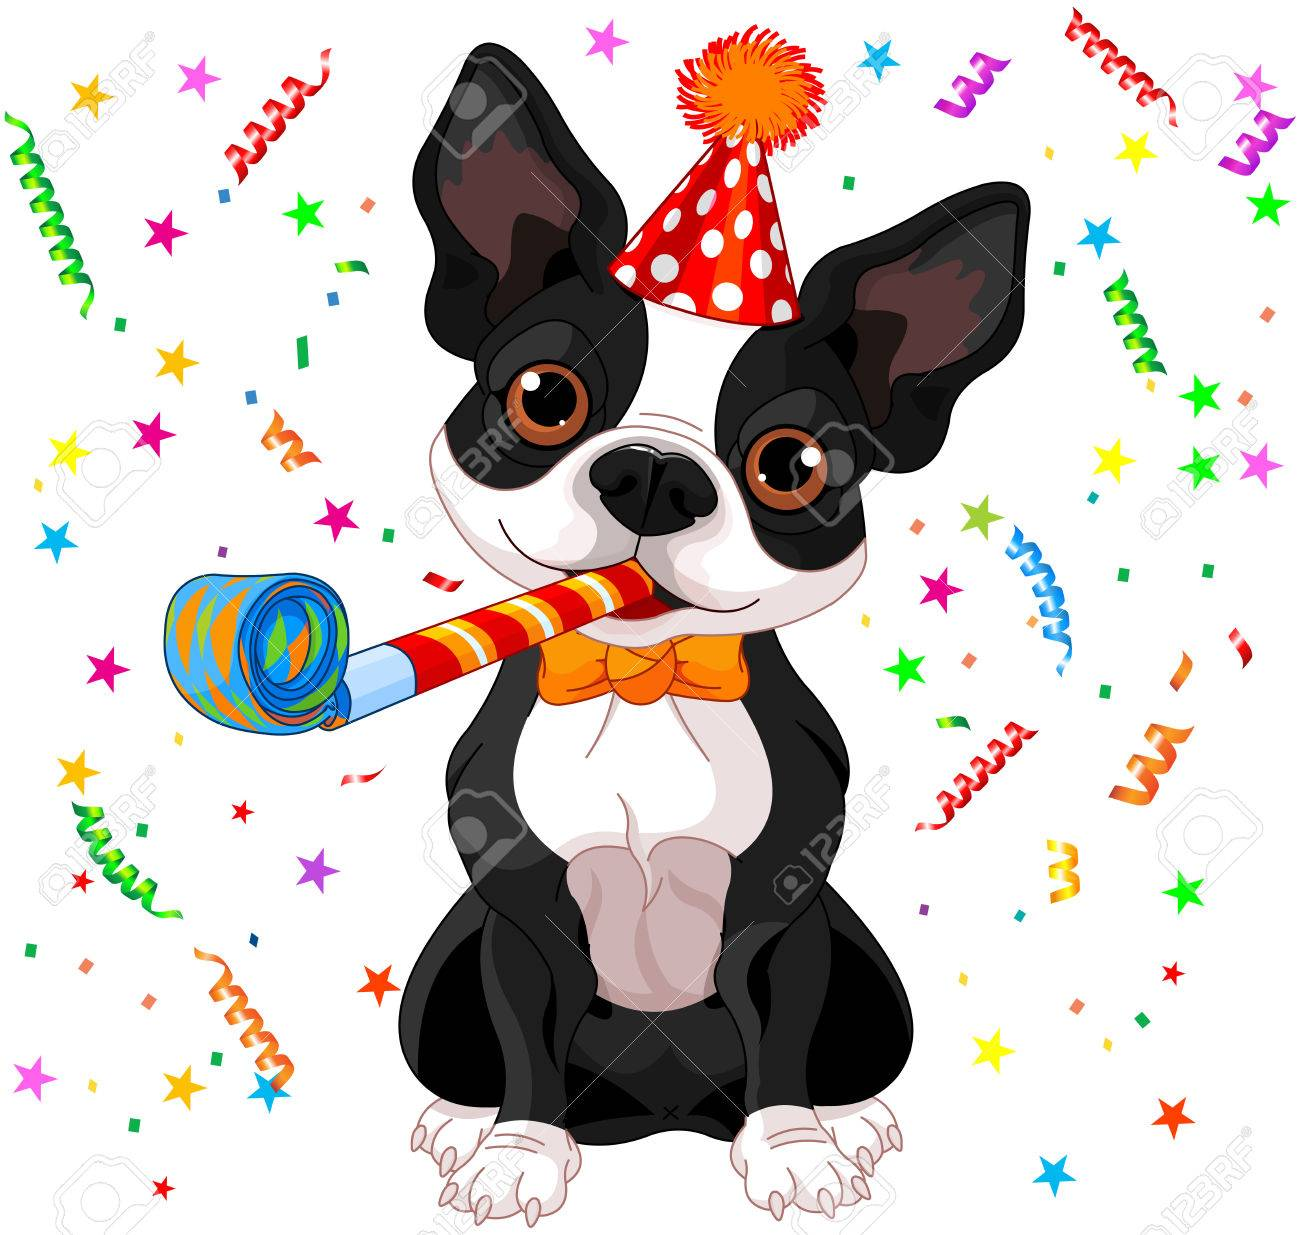 Aucune affinité avec mon chien... - Page 3 35588778-illustration-of-cute-boston-terrier-celebrating